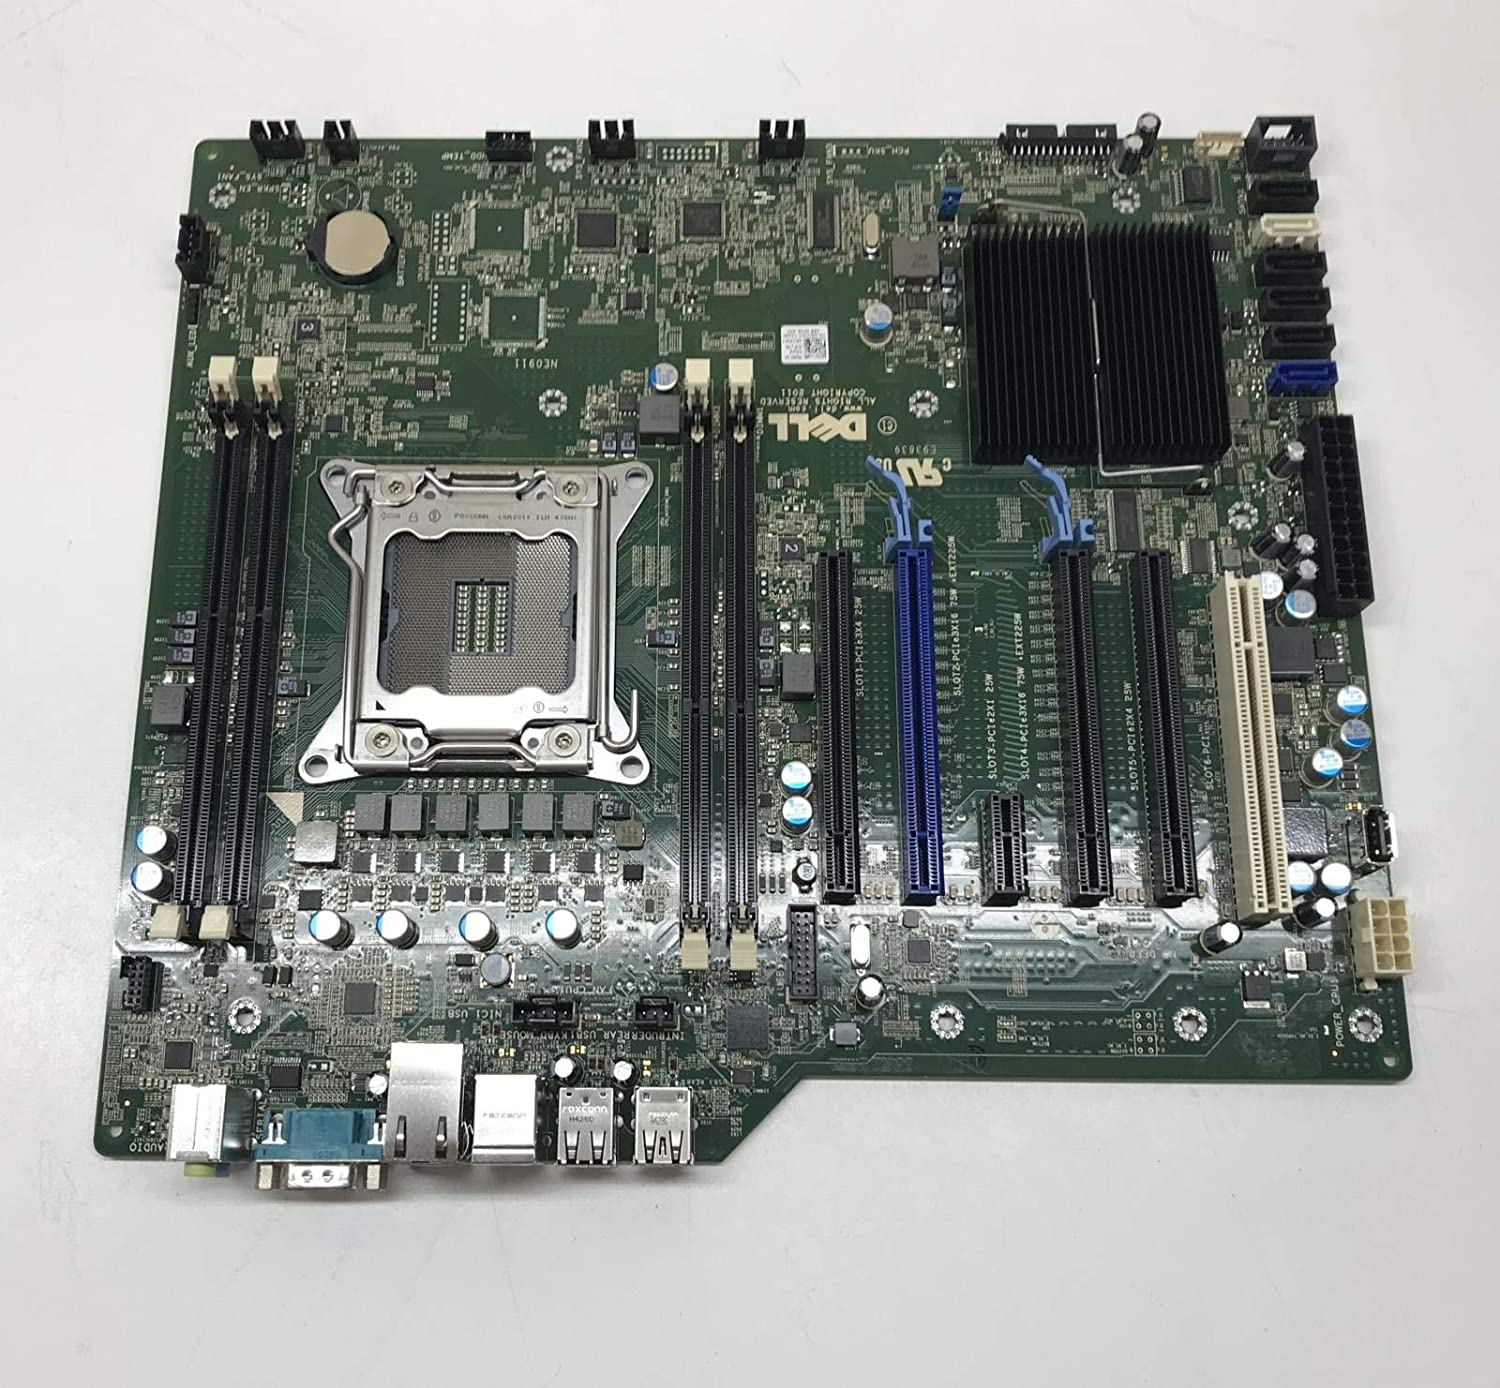 RCPW3 Dell Precision T3600 Motherboard